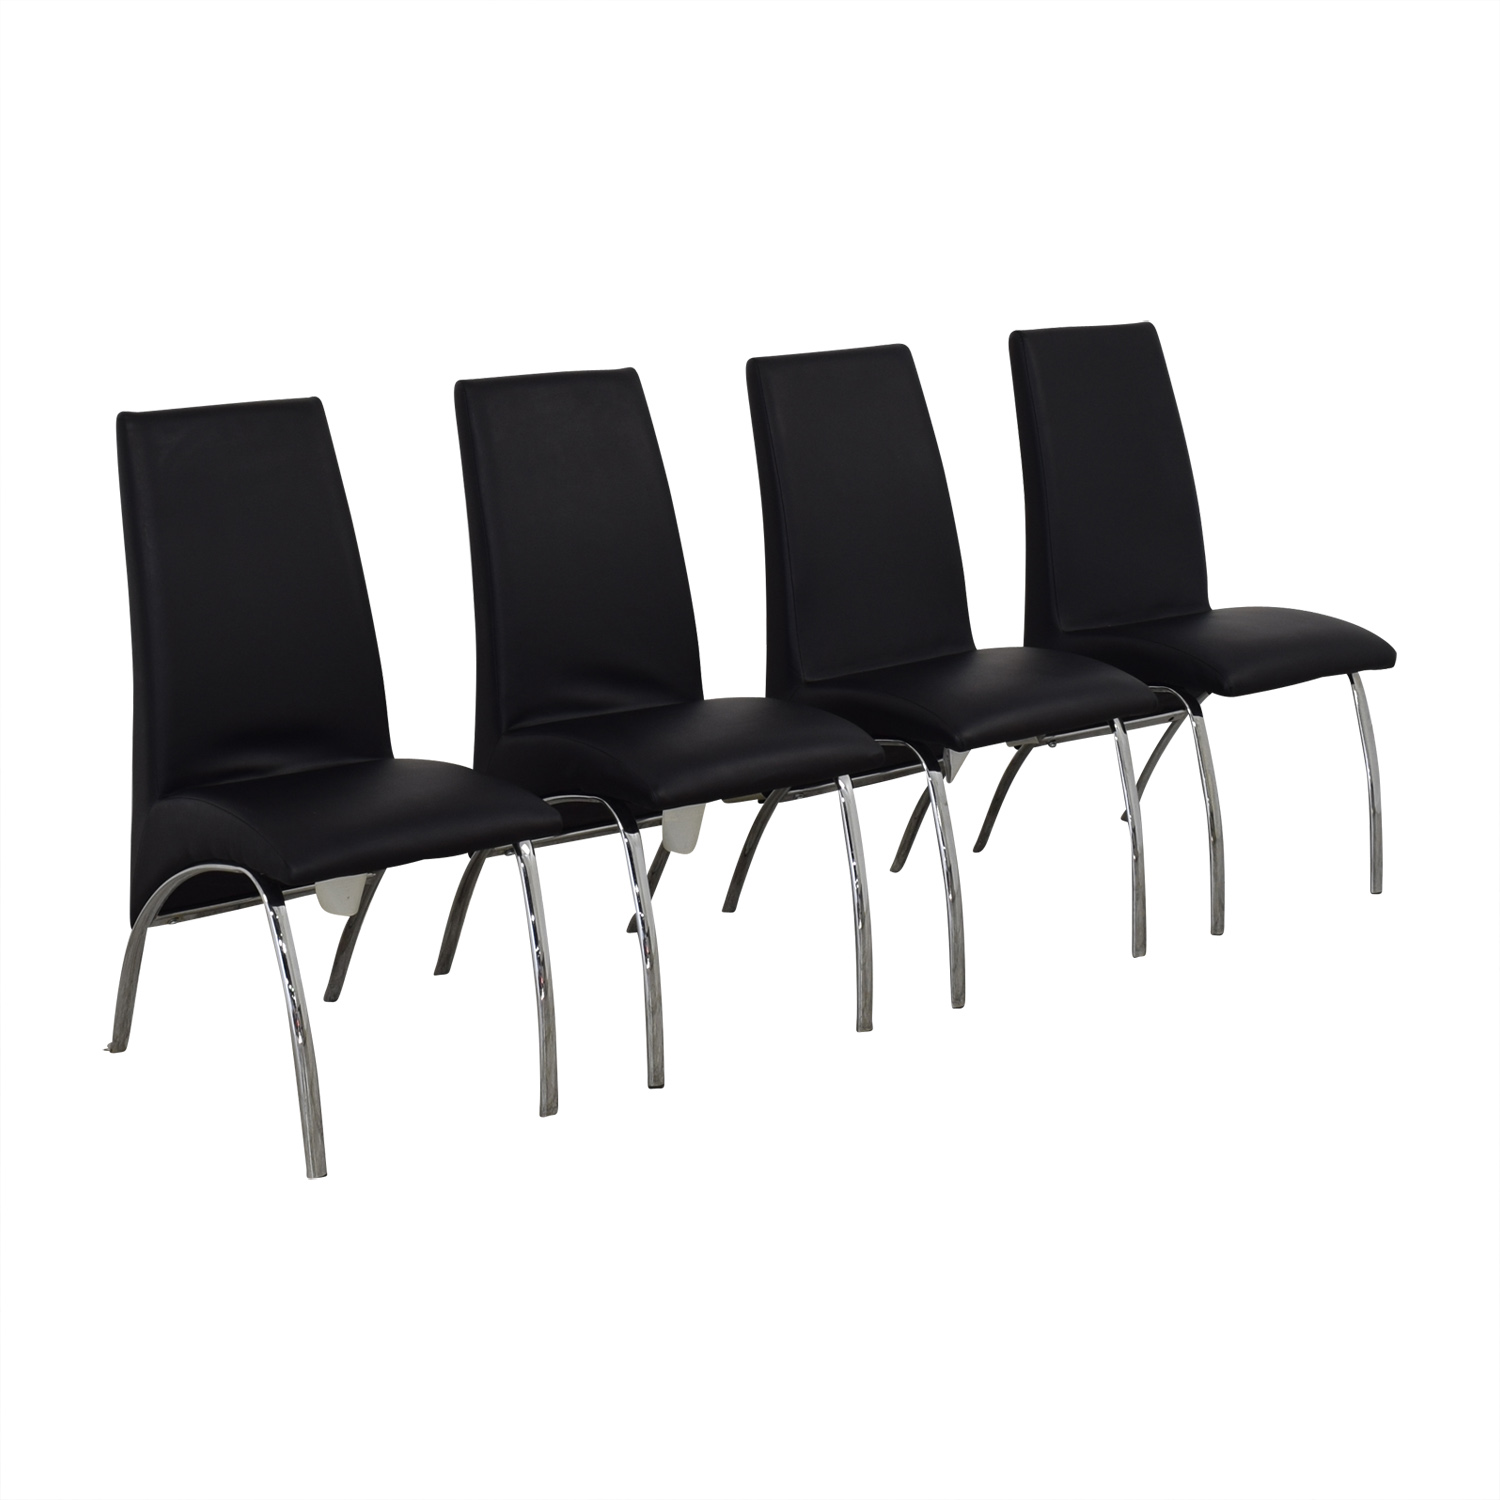 Coaster Fine Furniture Coaster Ophelia Leather Dining Chairs Dining Chairs